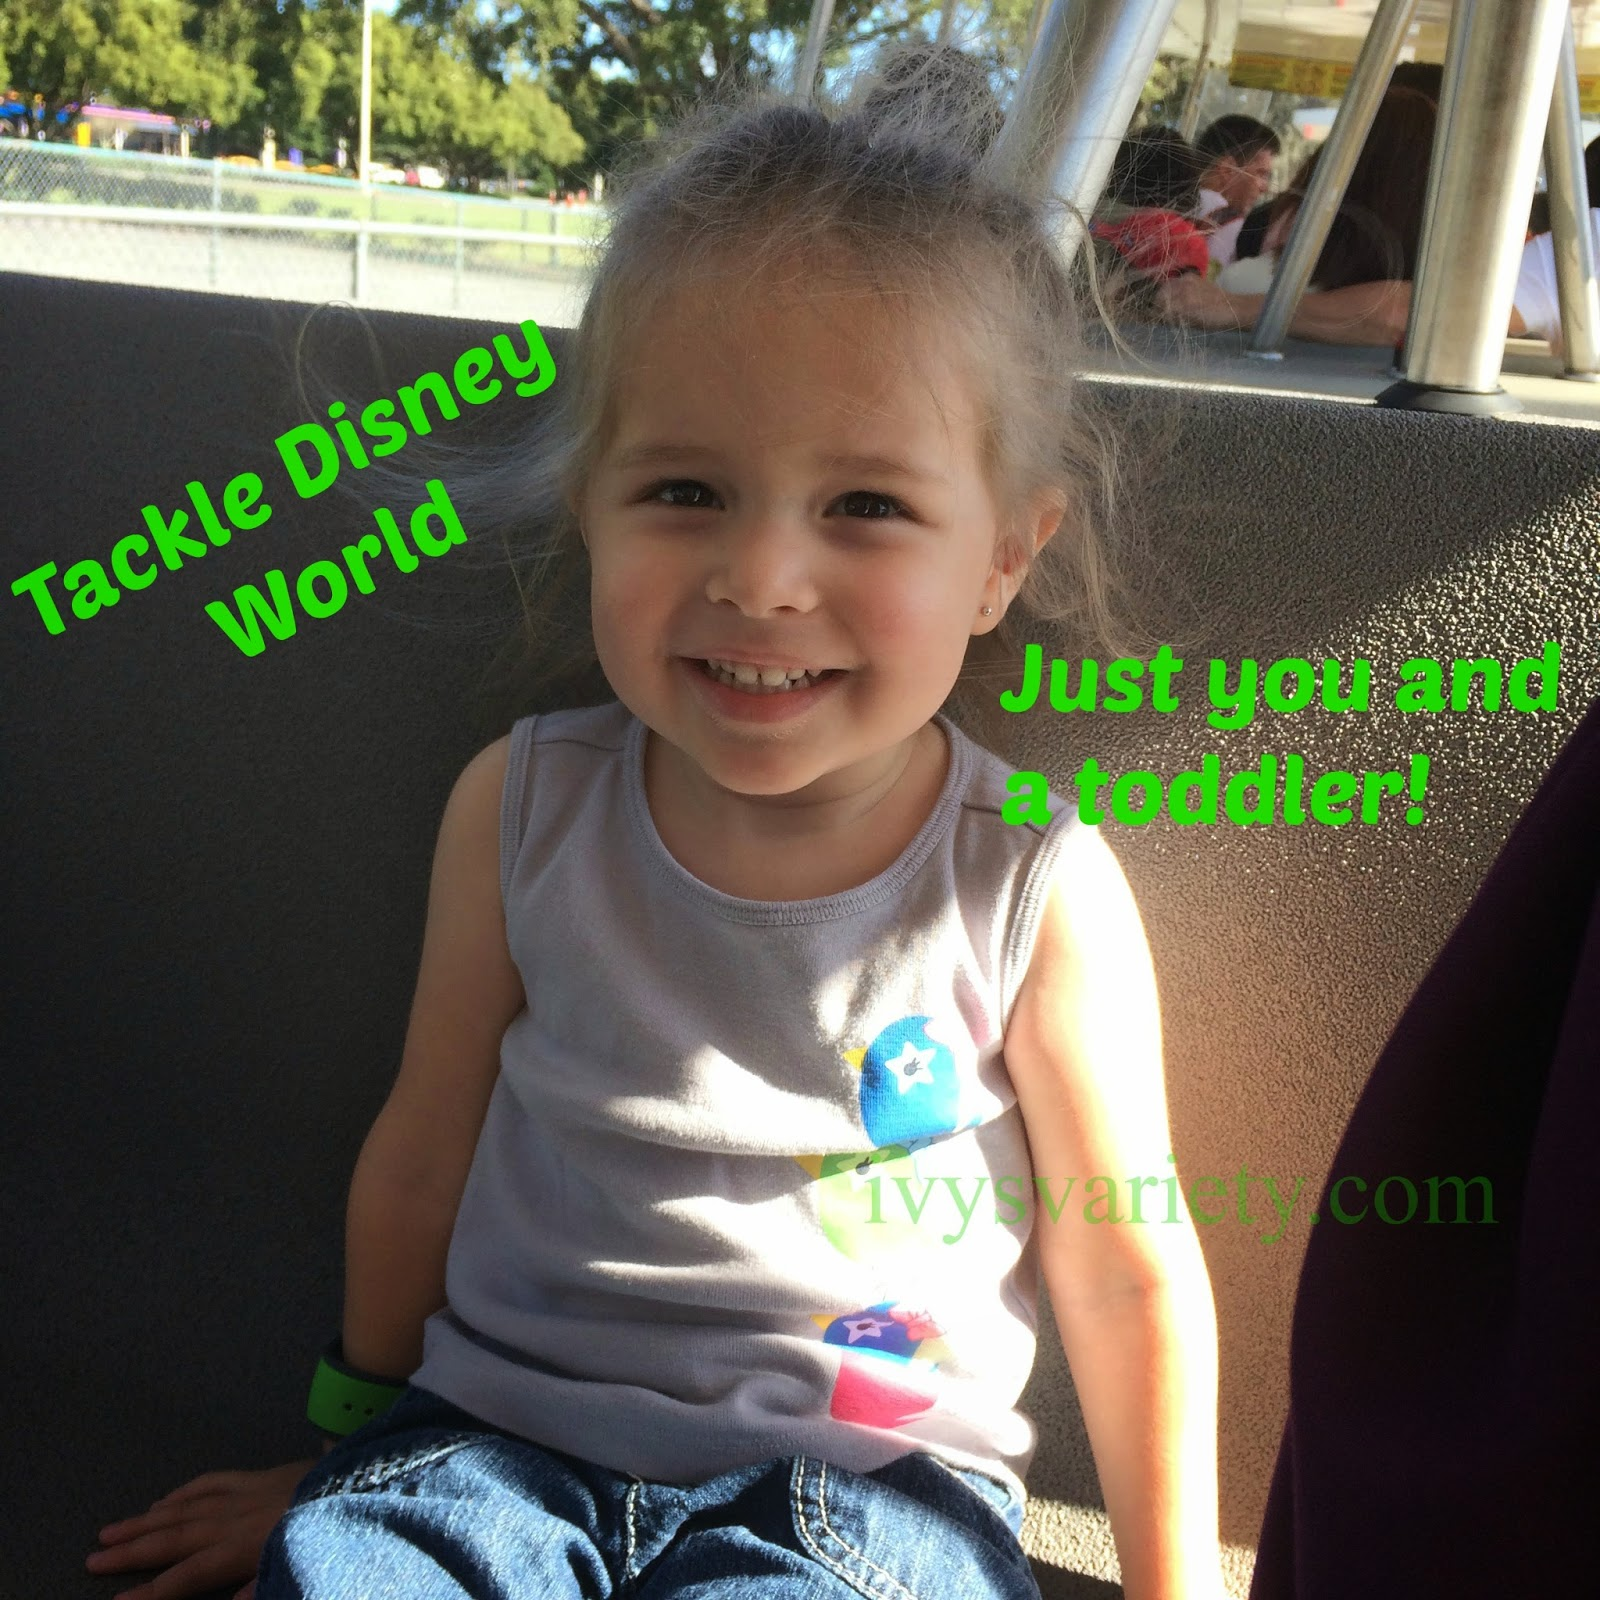 Tackle Disney World when it's just you and a toddler